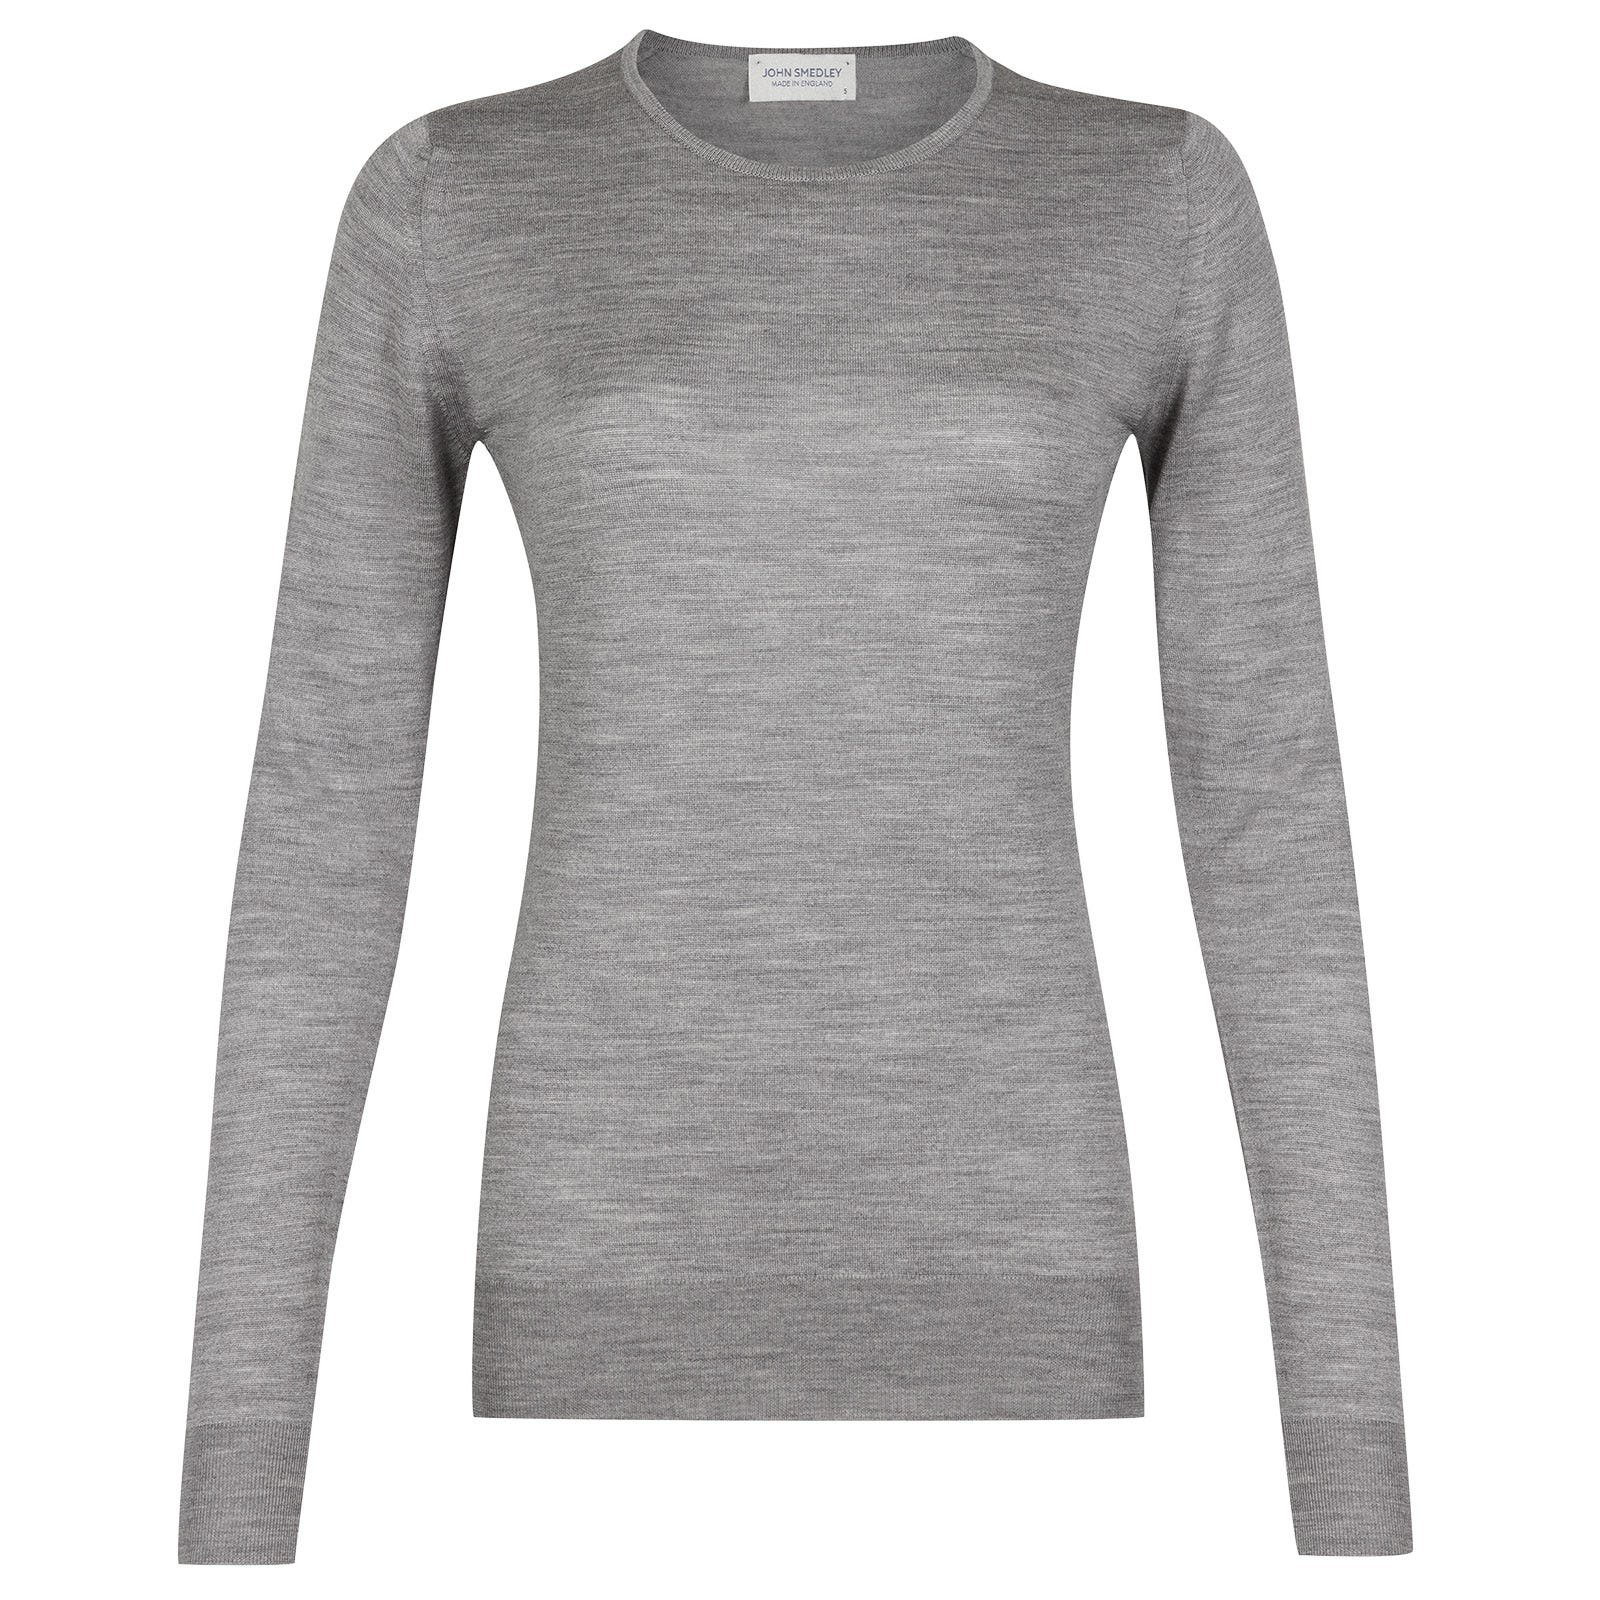 John Smedley geranium Merino Wool Sweater in Silver-XL